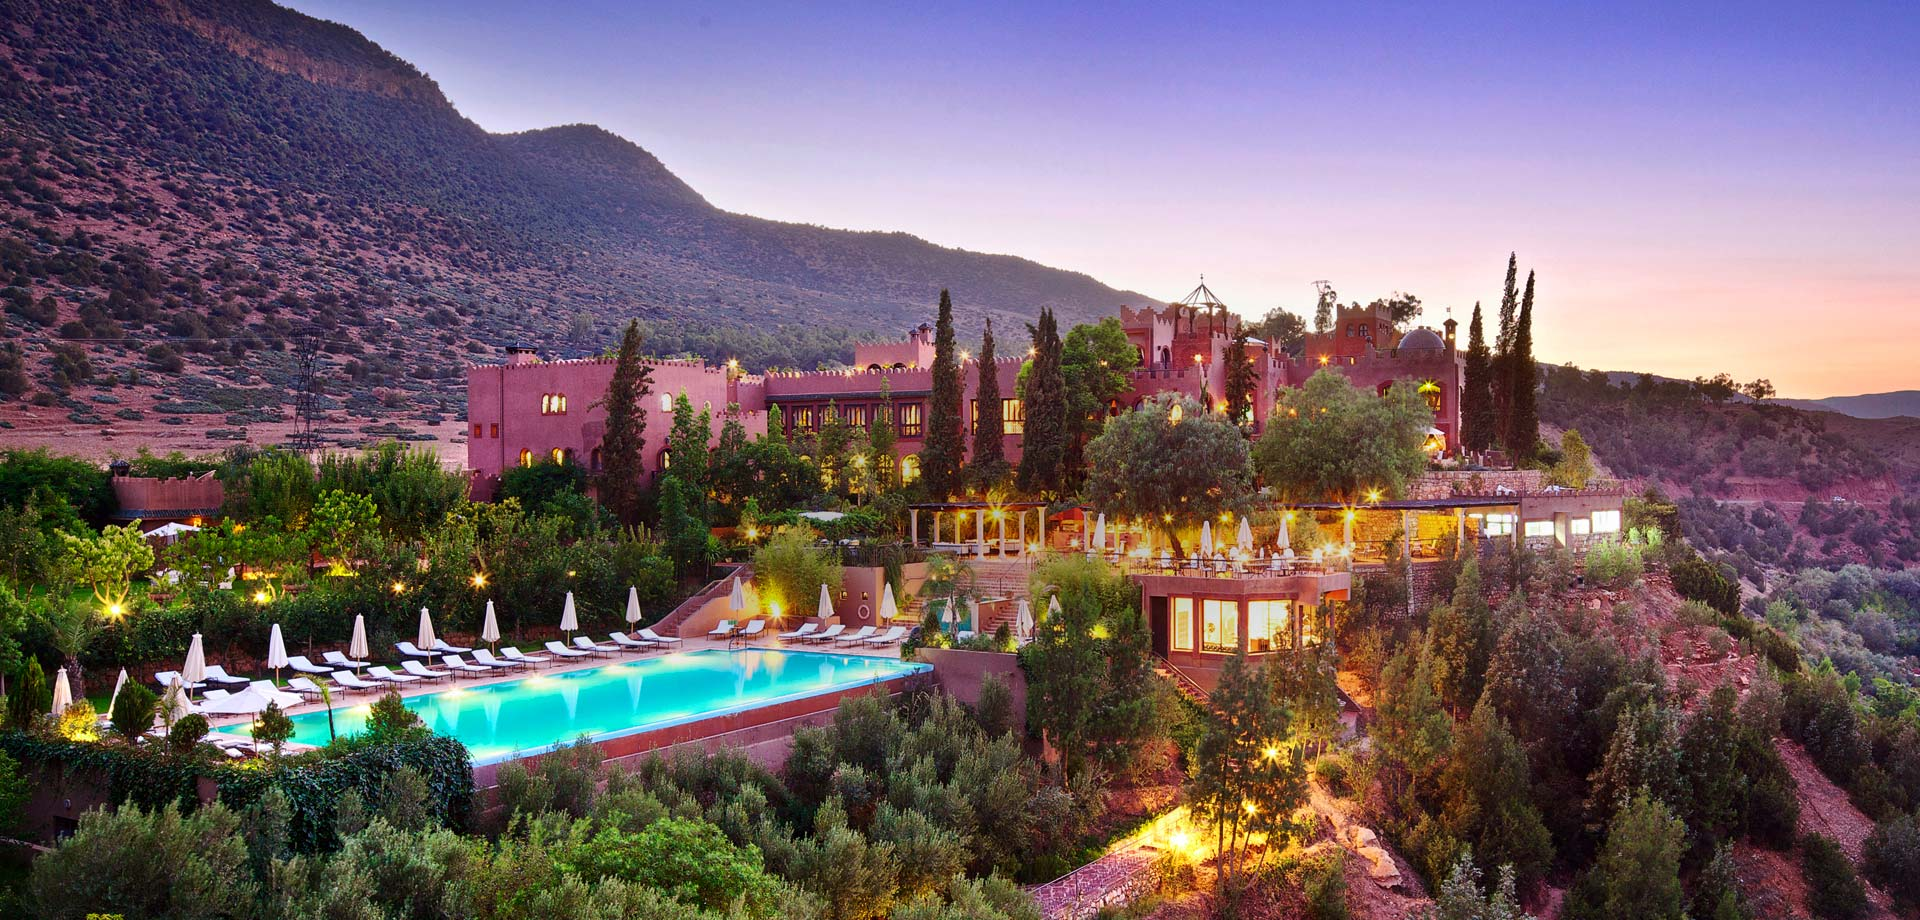 KASBAH TAMADOT - luxury boutique hotel in Atlas Mountains, Morocco